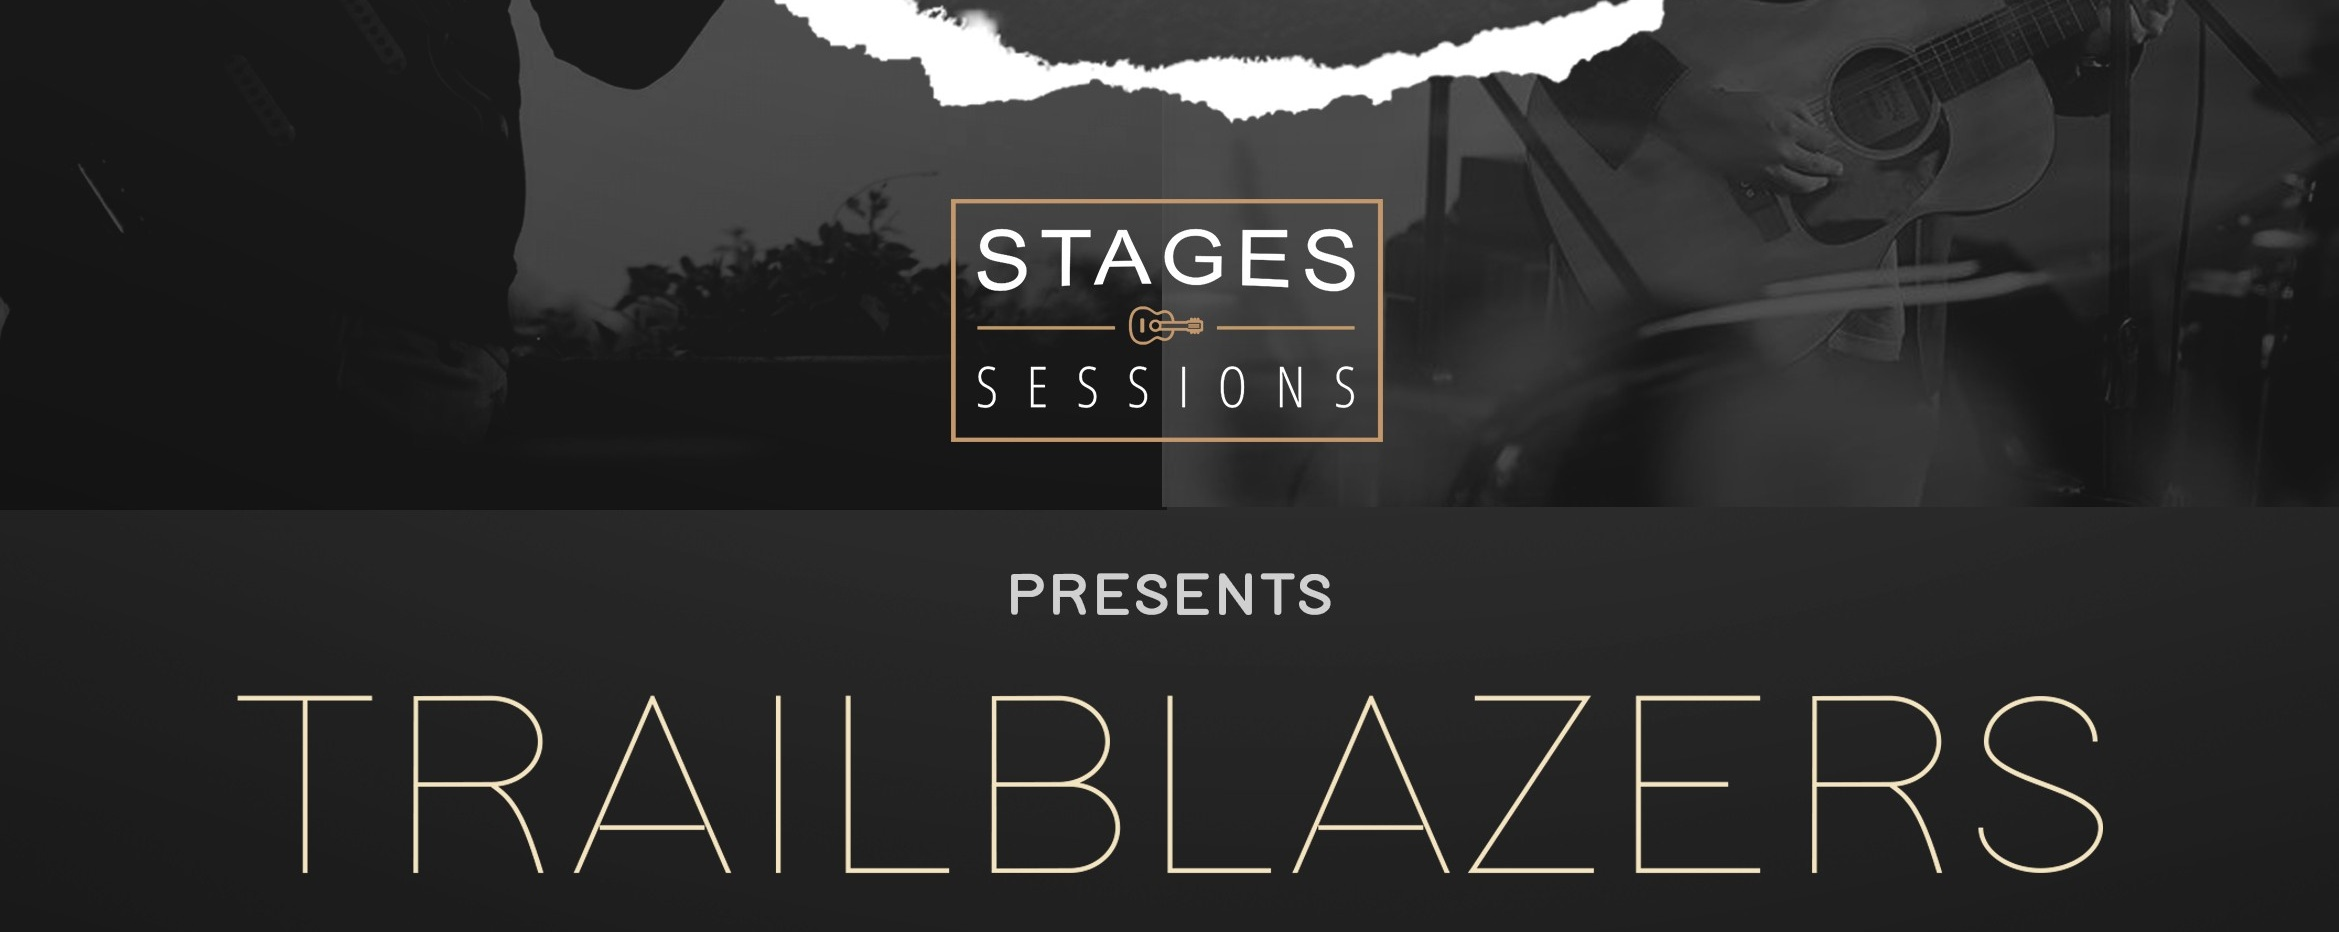 Stages Sessions presents Trailblazers